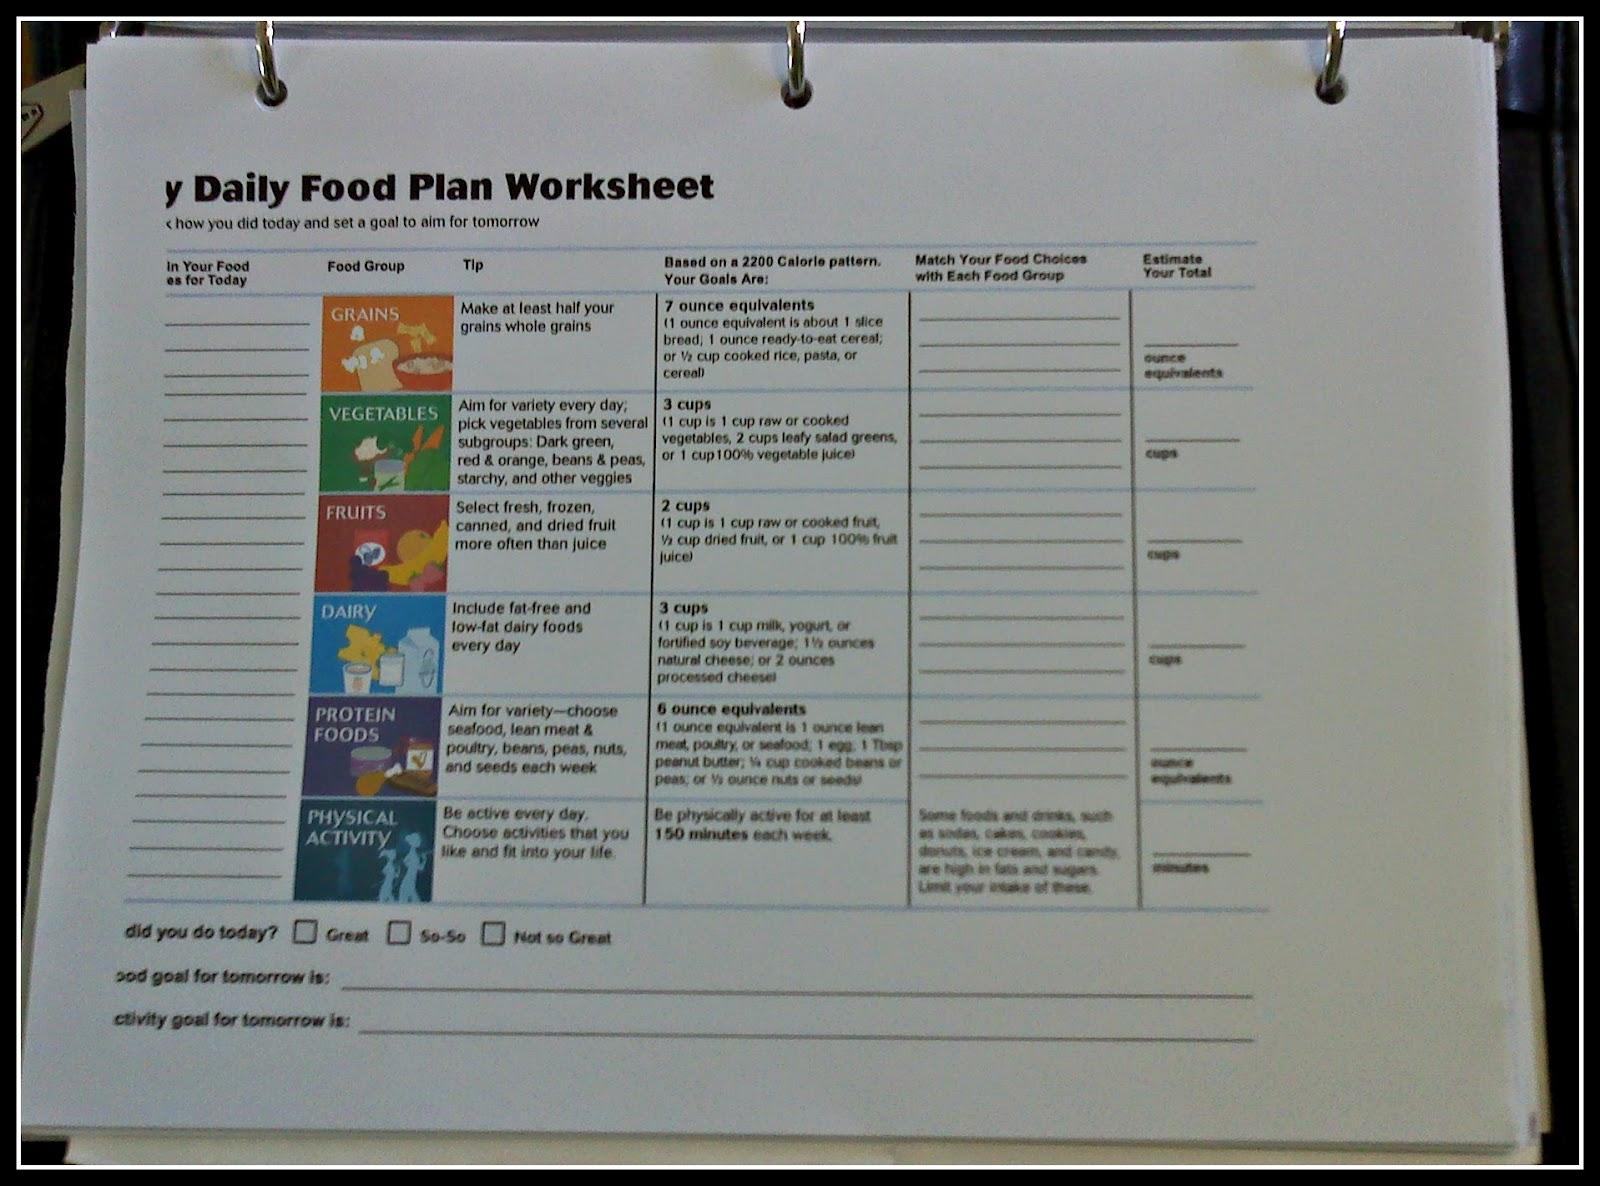 Worksheet My Daily Food Plan Worksheet Grass Fedjp